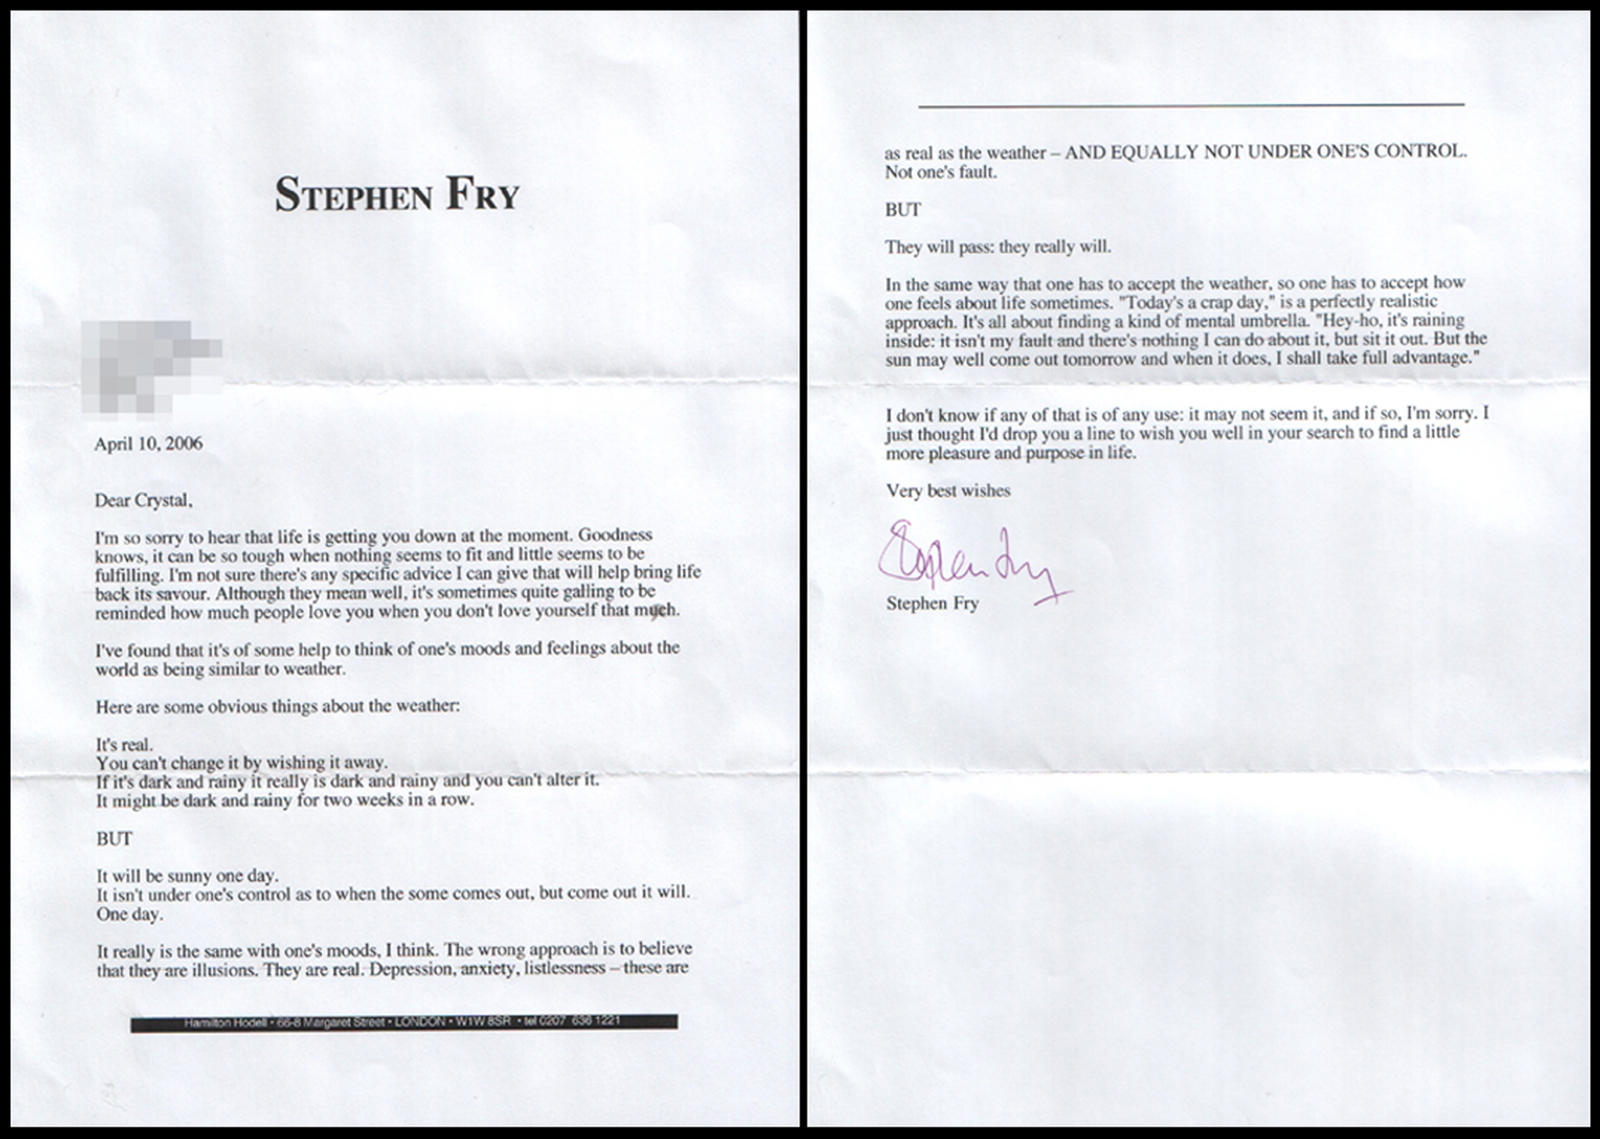 My letter from Stephen Fry